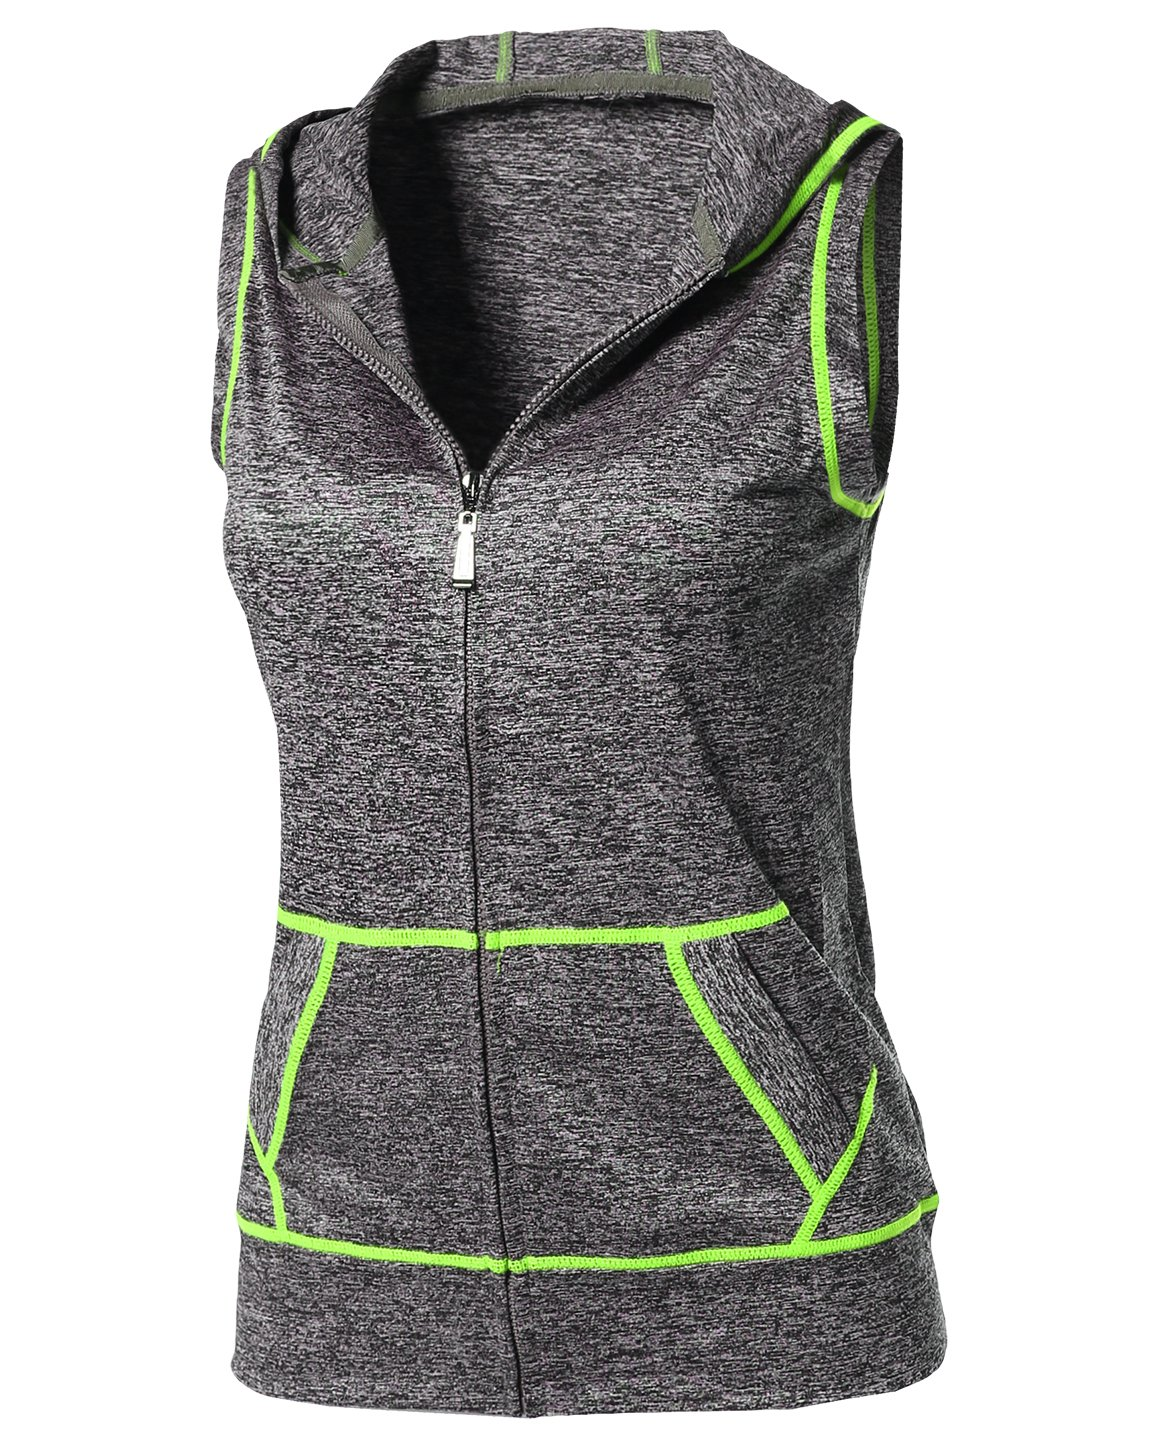 Made by Emma Sports Yoga Workout Training Stretch Hooded Zipper Vest Neon Yellow LXL Size